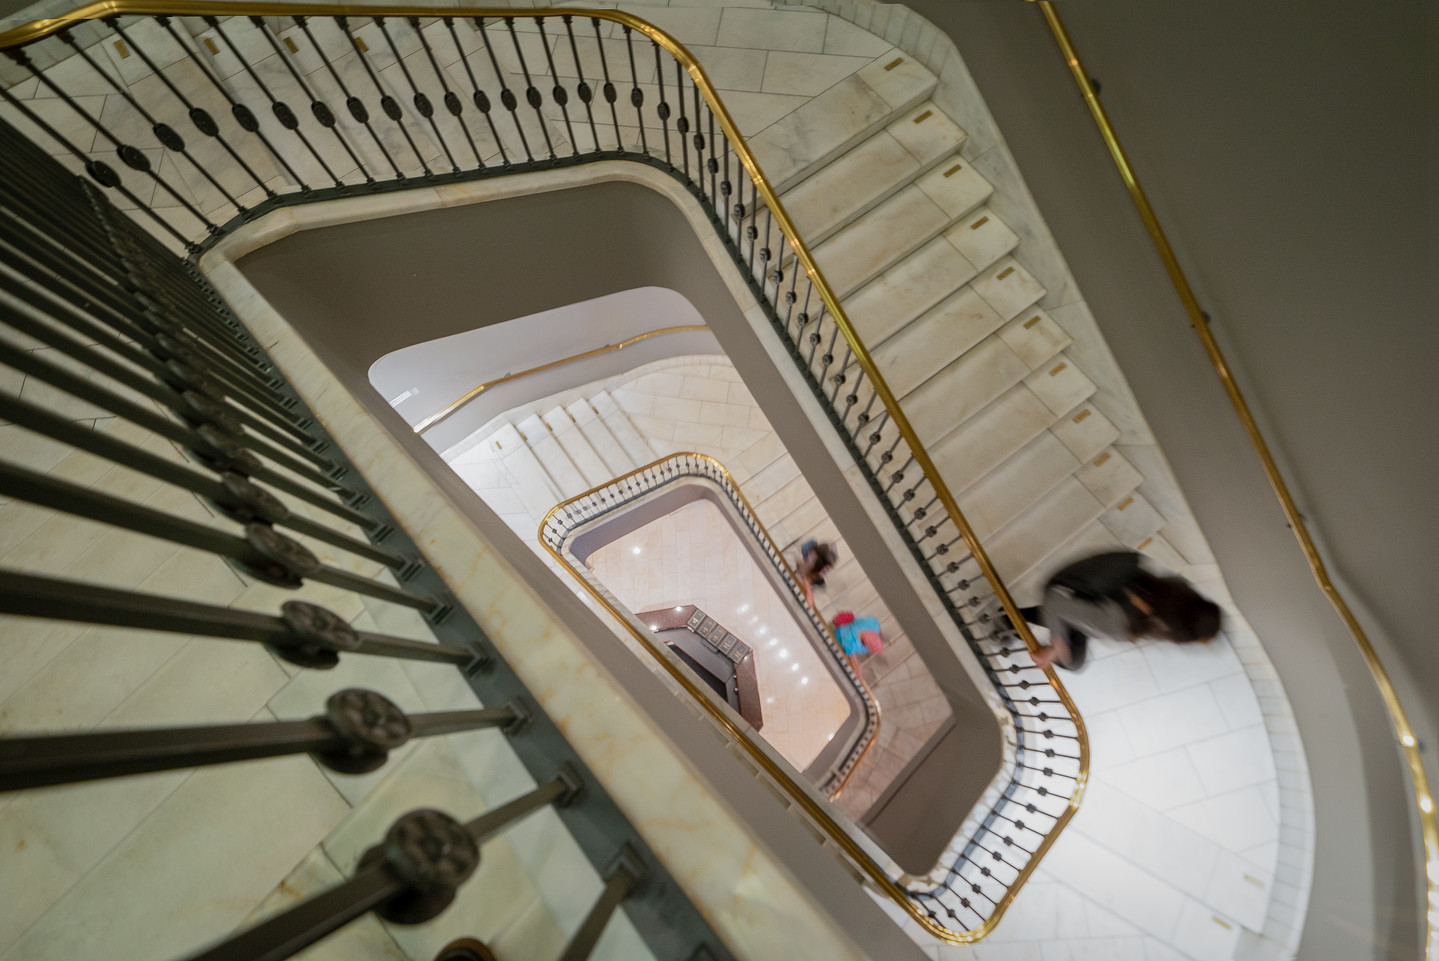 Photograph of the stairwell taken from the top looking down as two people are walking down the stairs.